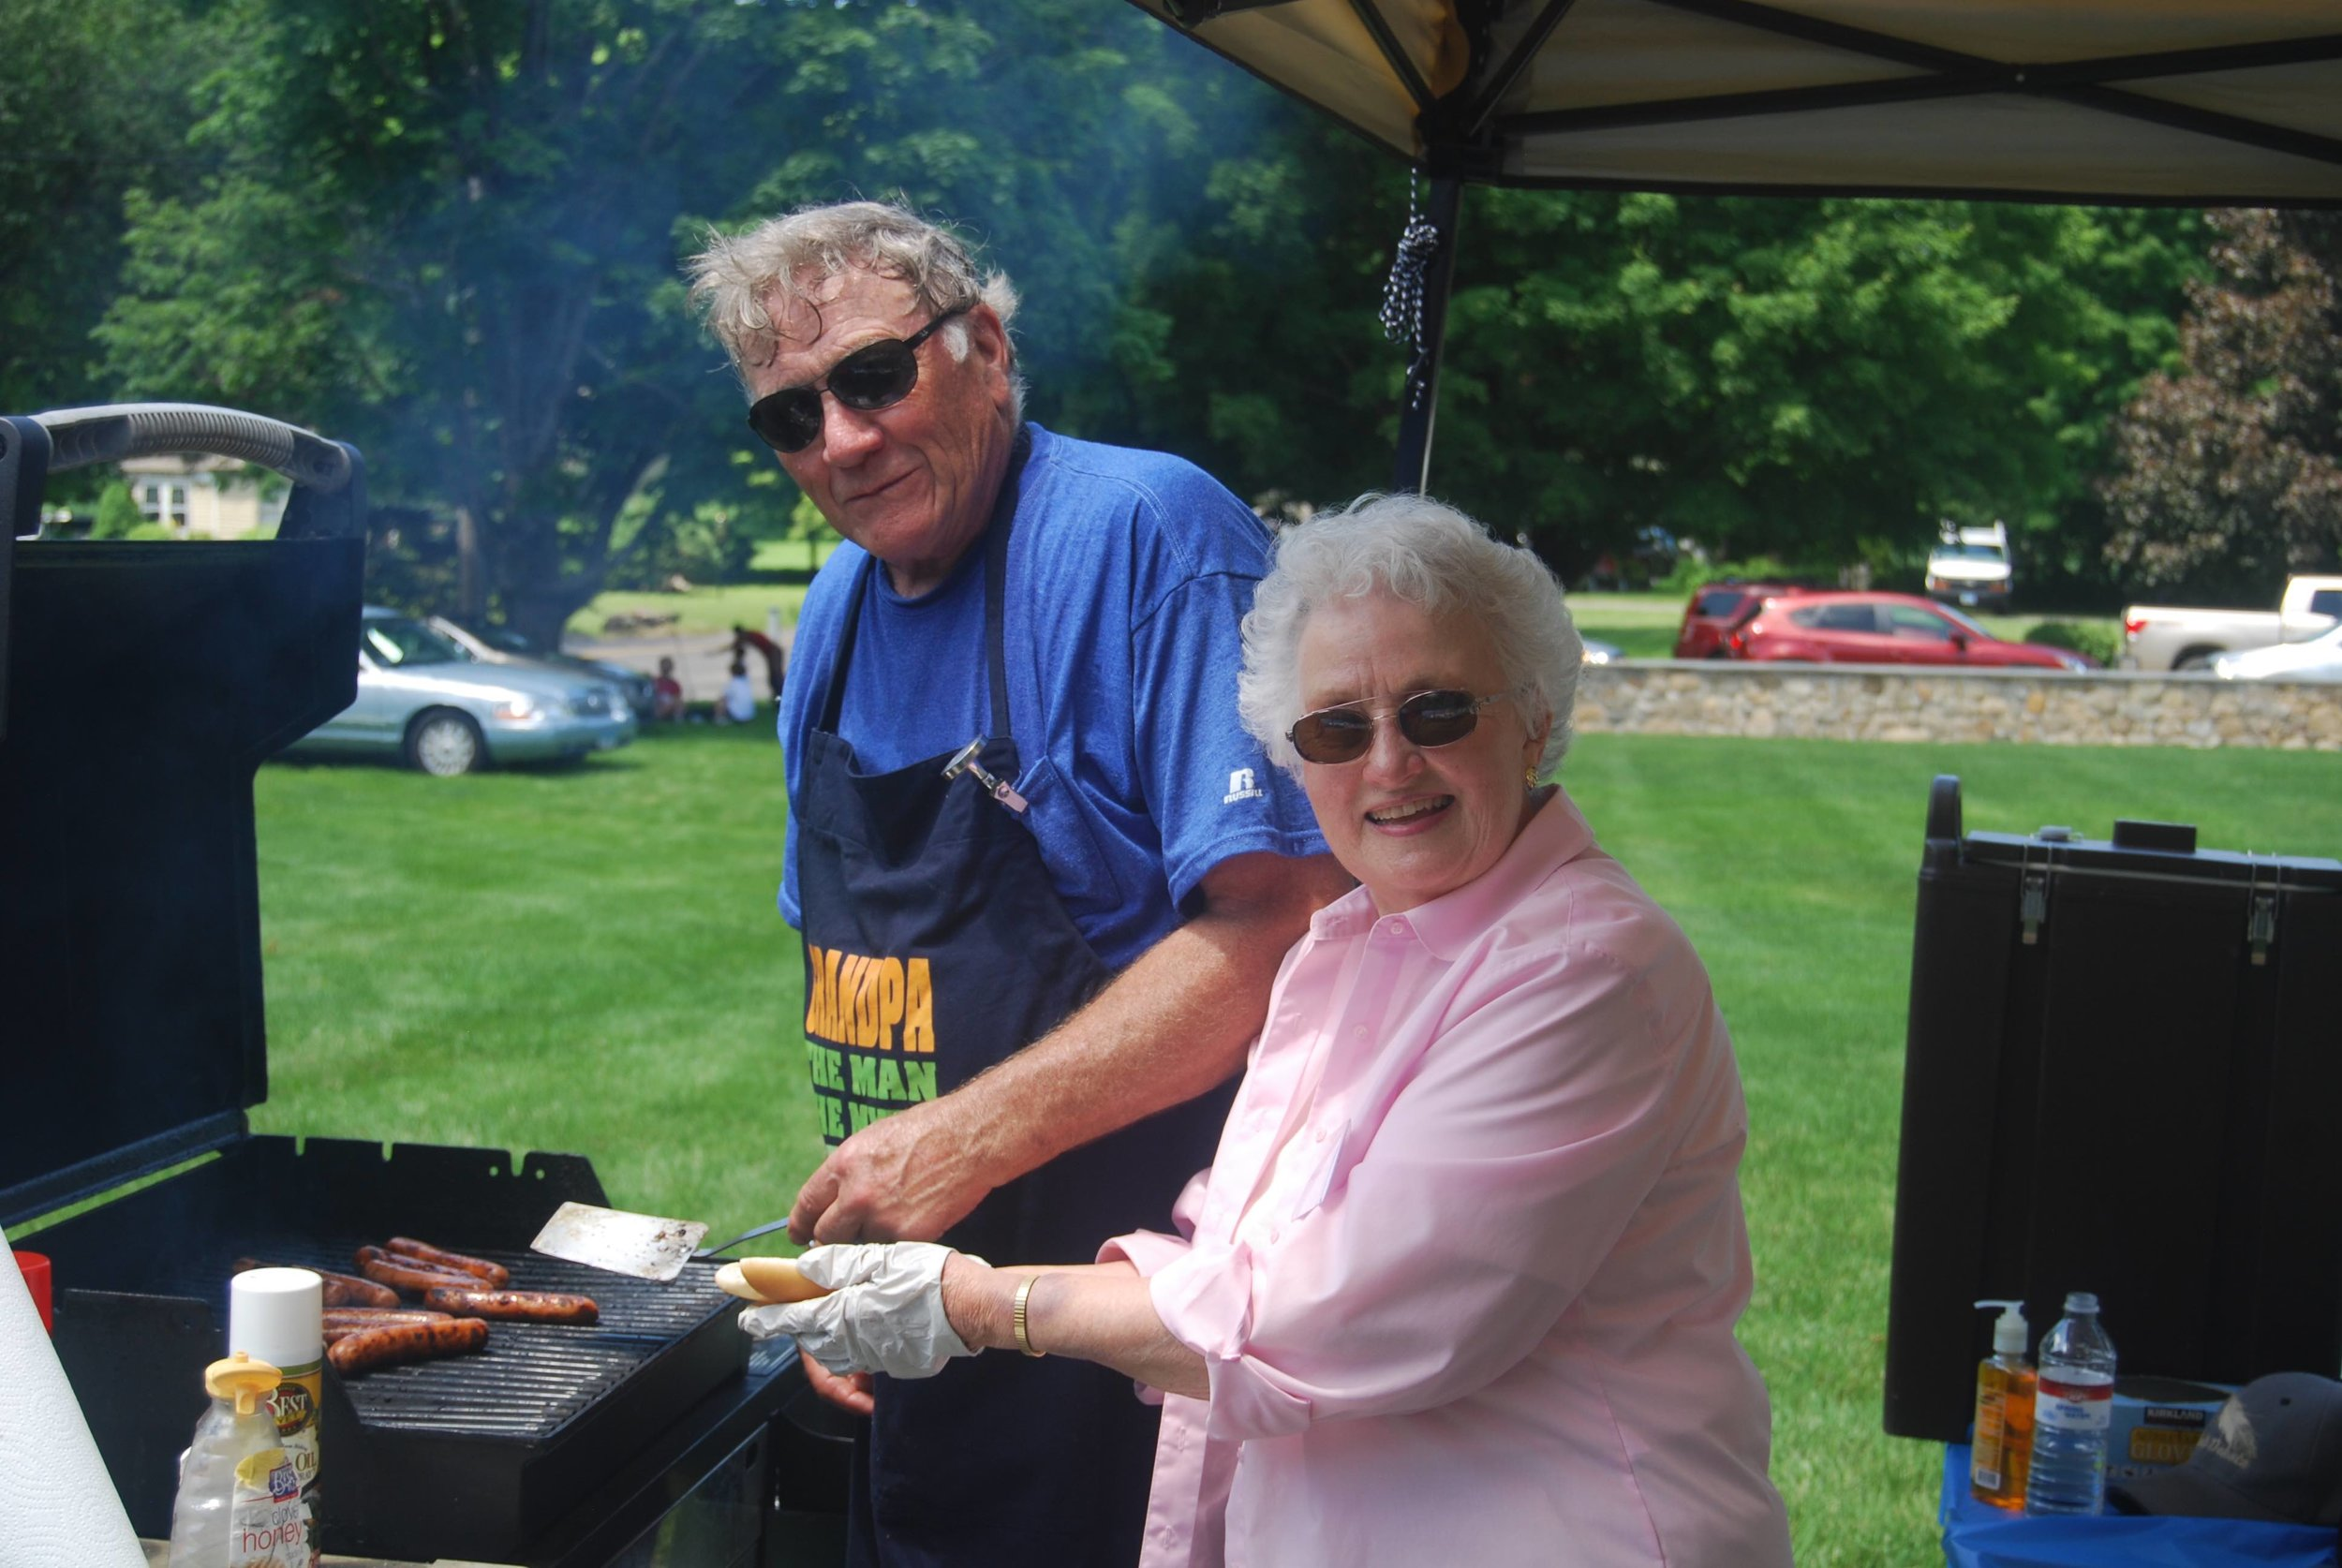 United Church of Christ, Southbury Strawberry Festival Grilled Food